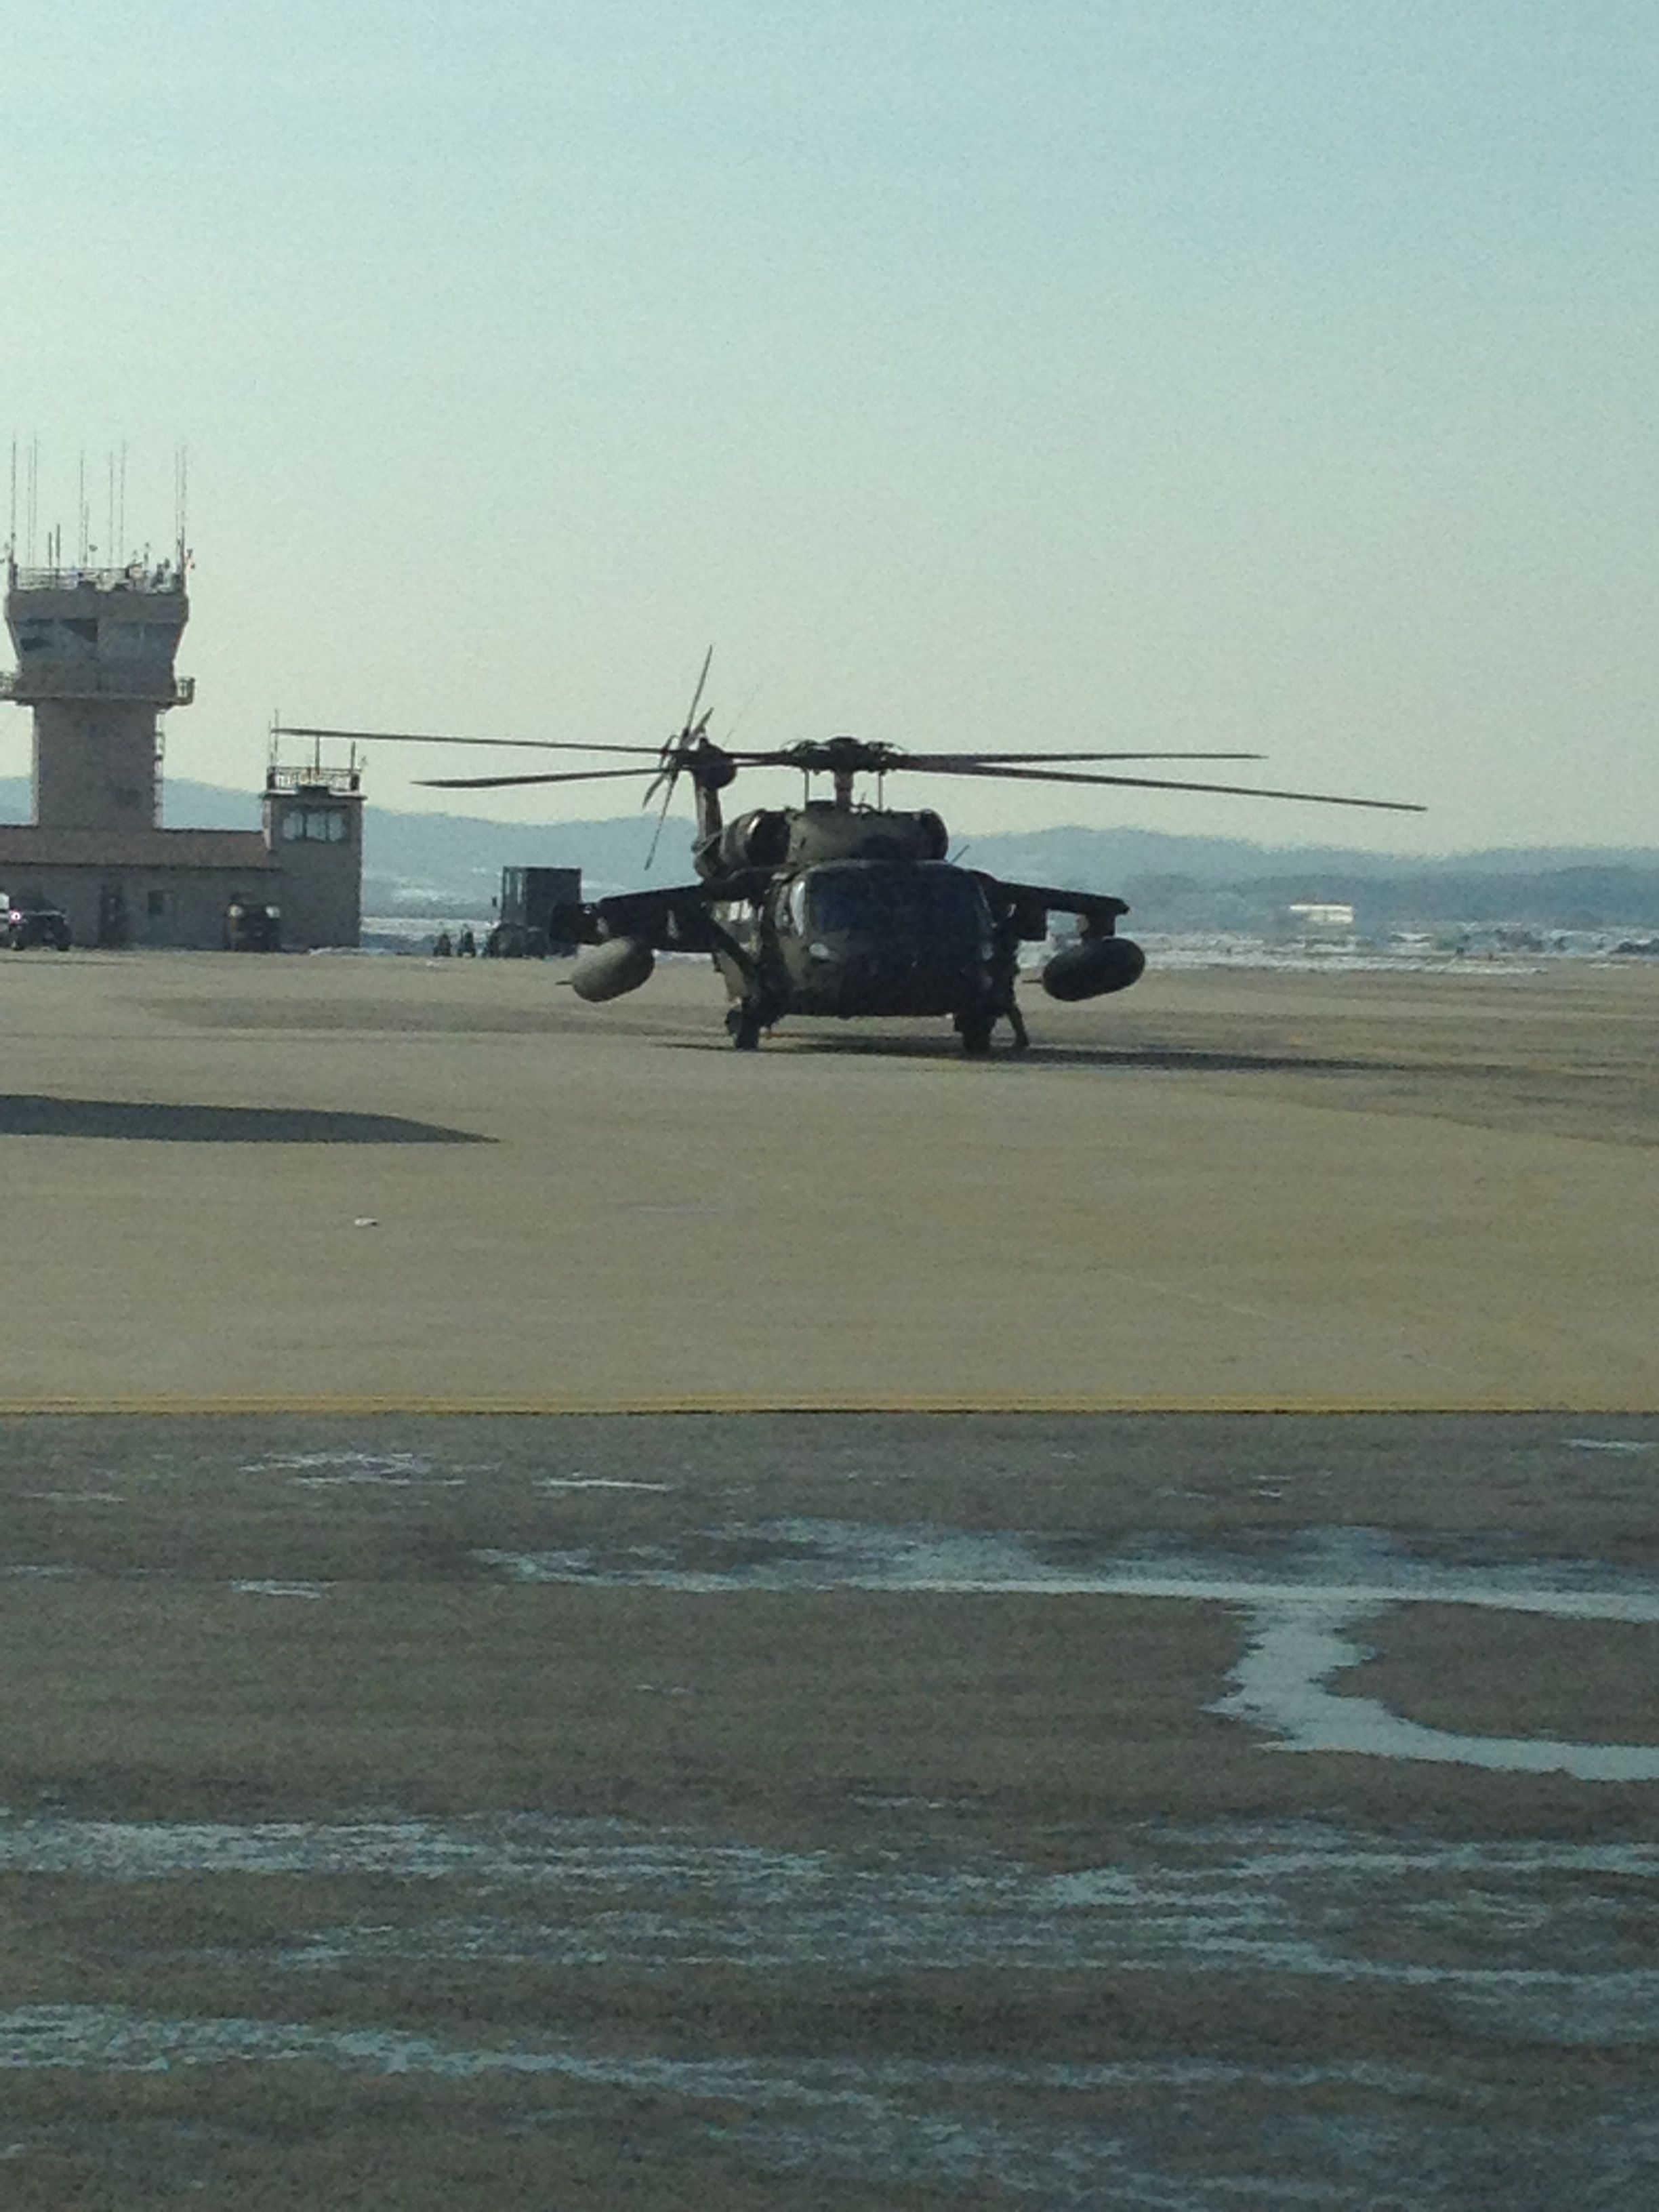 Army UH-60